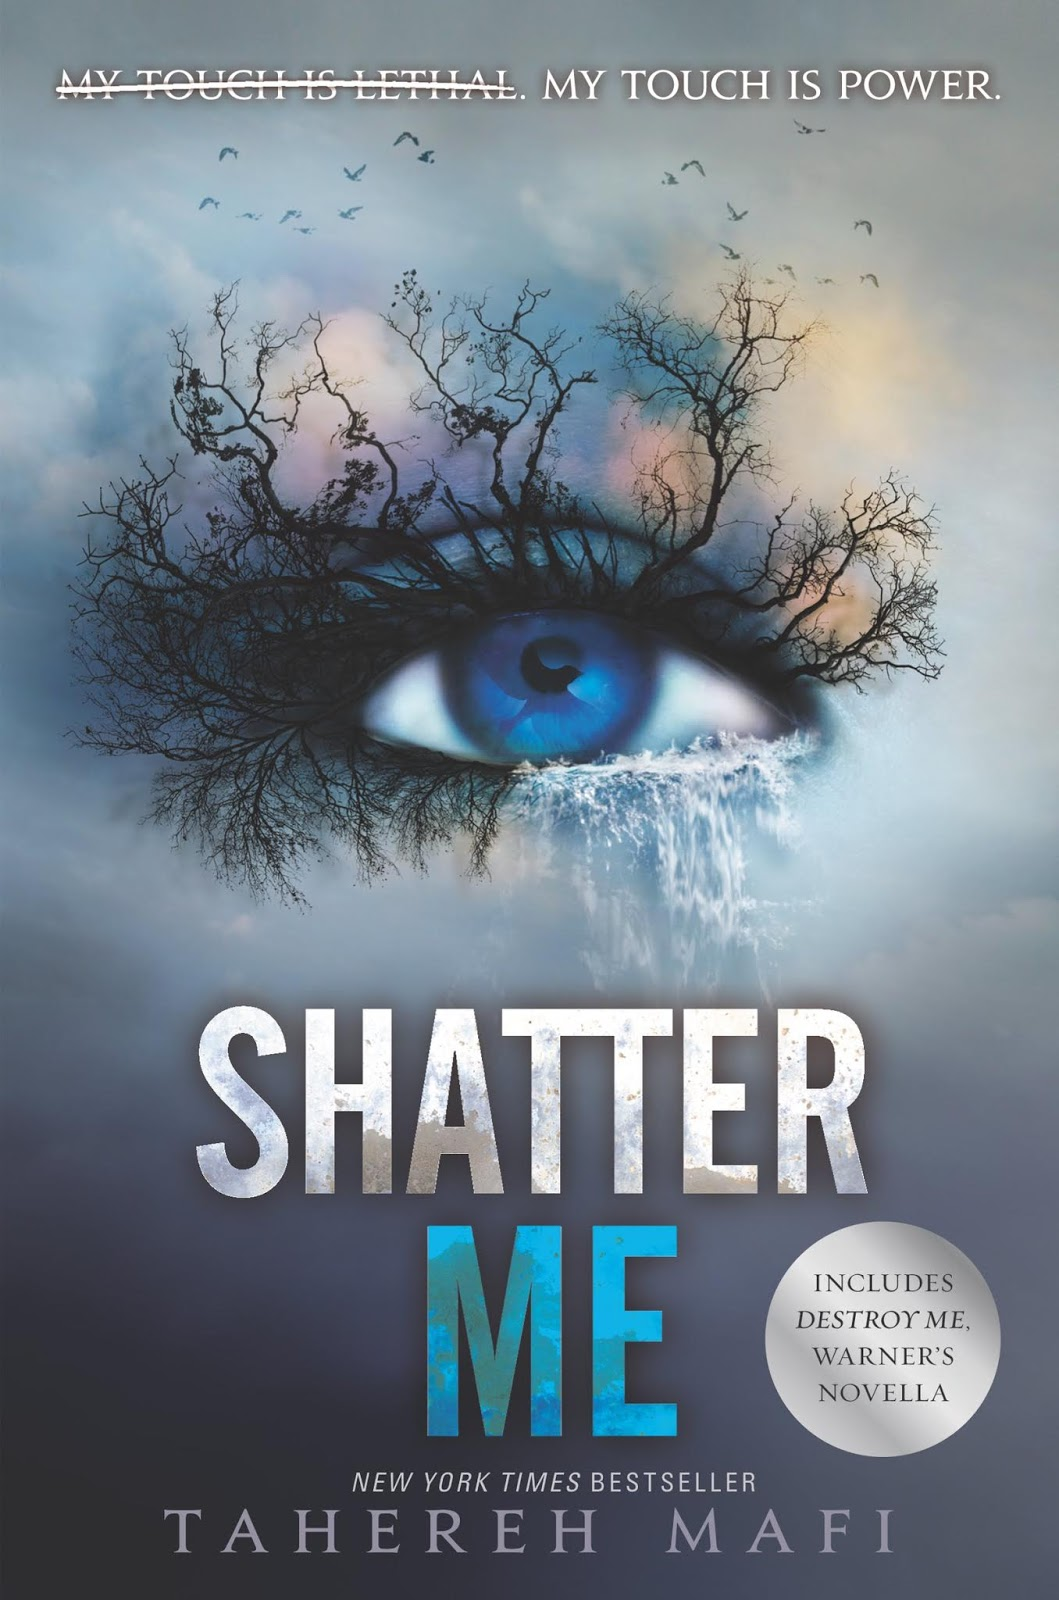 Shatter Me by Tahereh Mafi | Superior Young Adult Fiction | Book Review